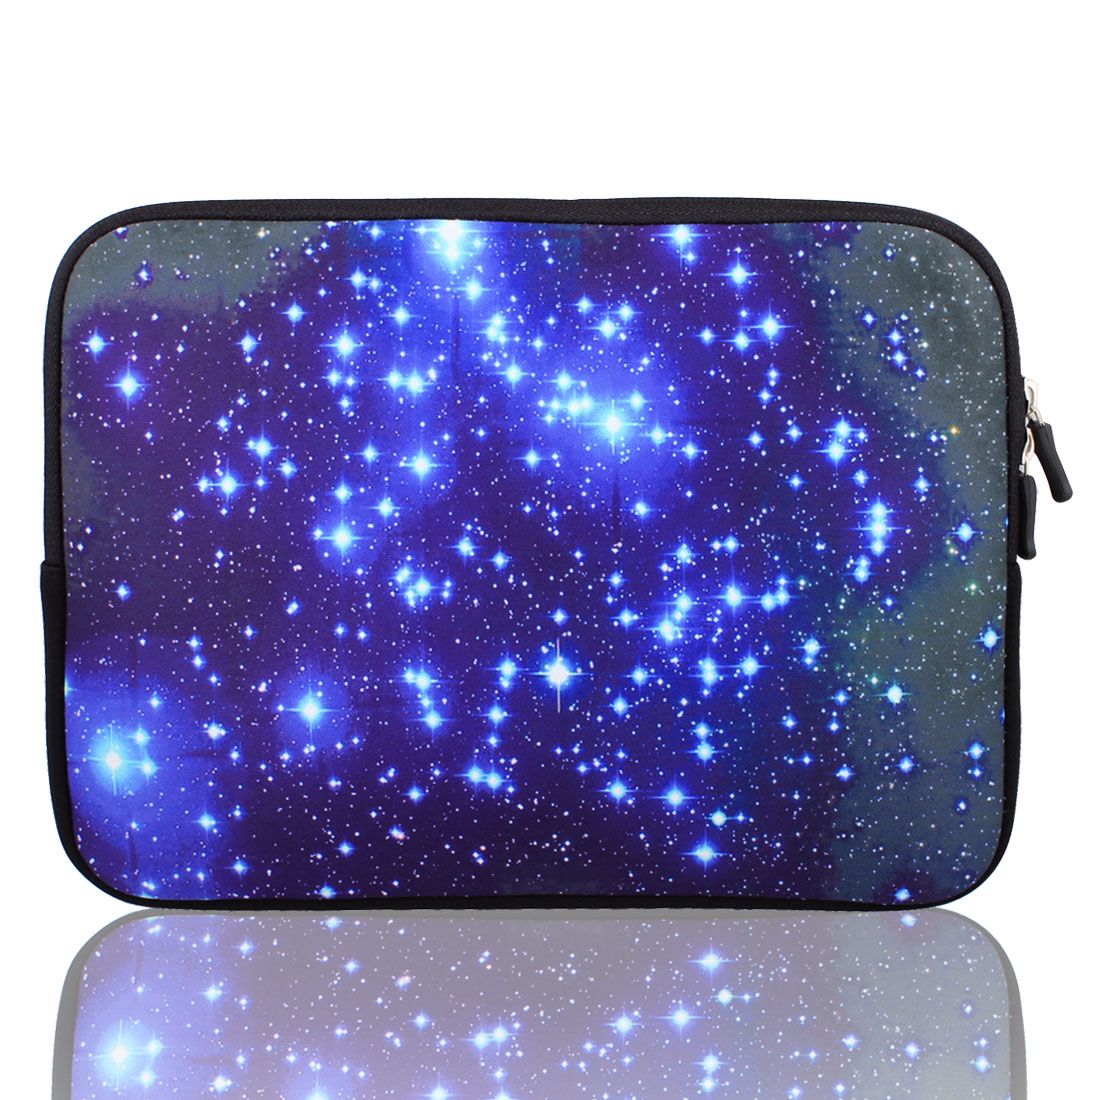 "Sky Print 10"" 10.1"" 10.2"" Neoprene Notebook Laptop Sleeve Bag Case"